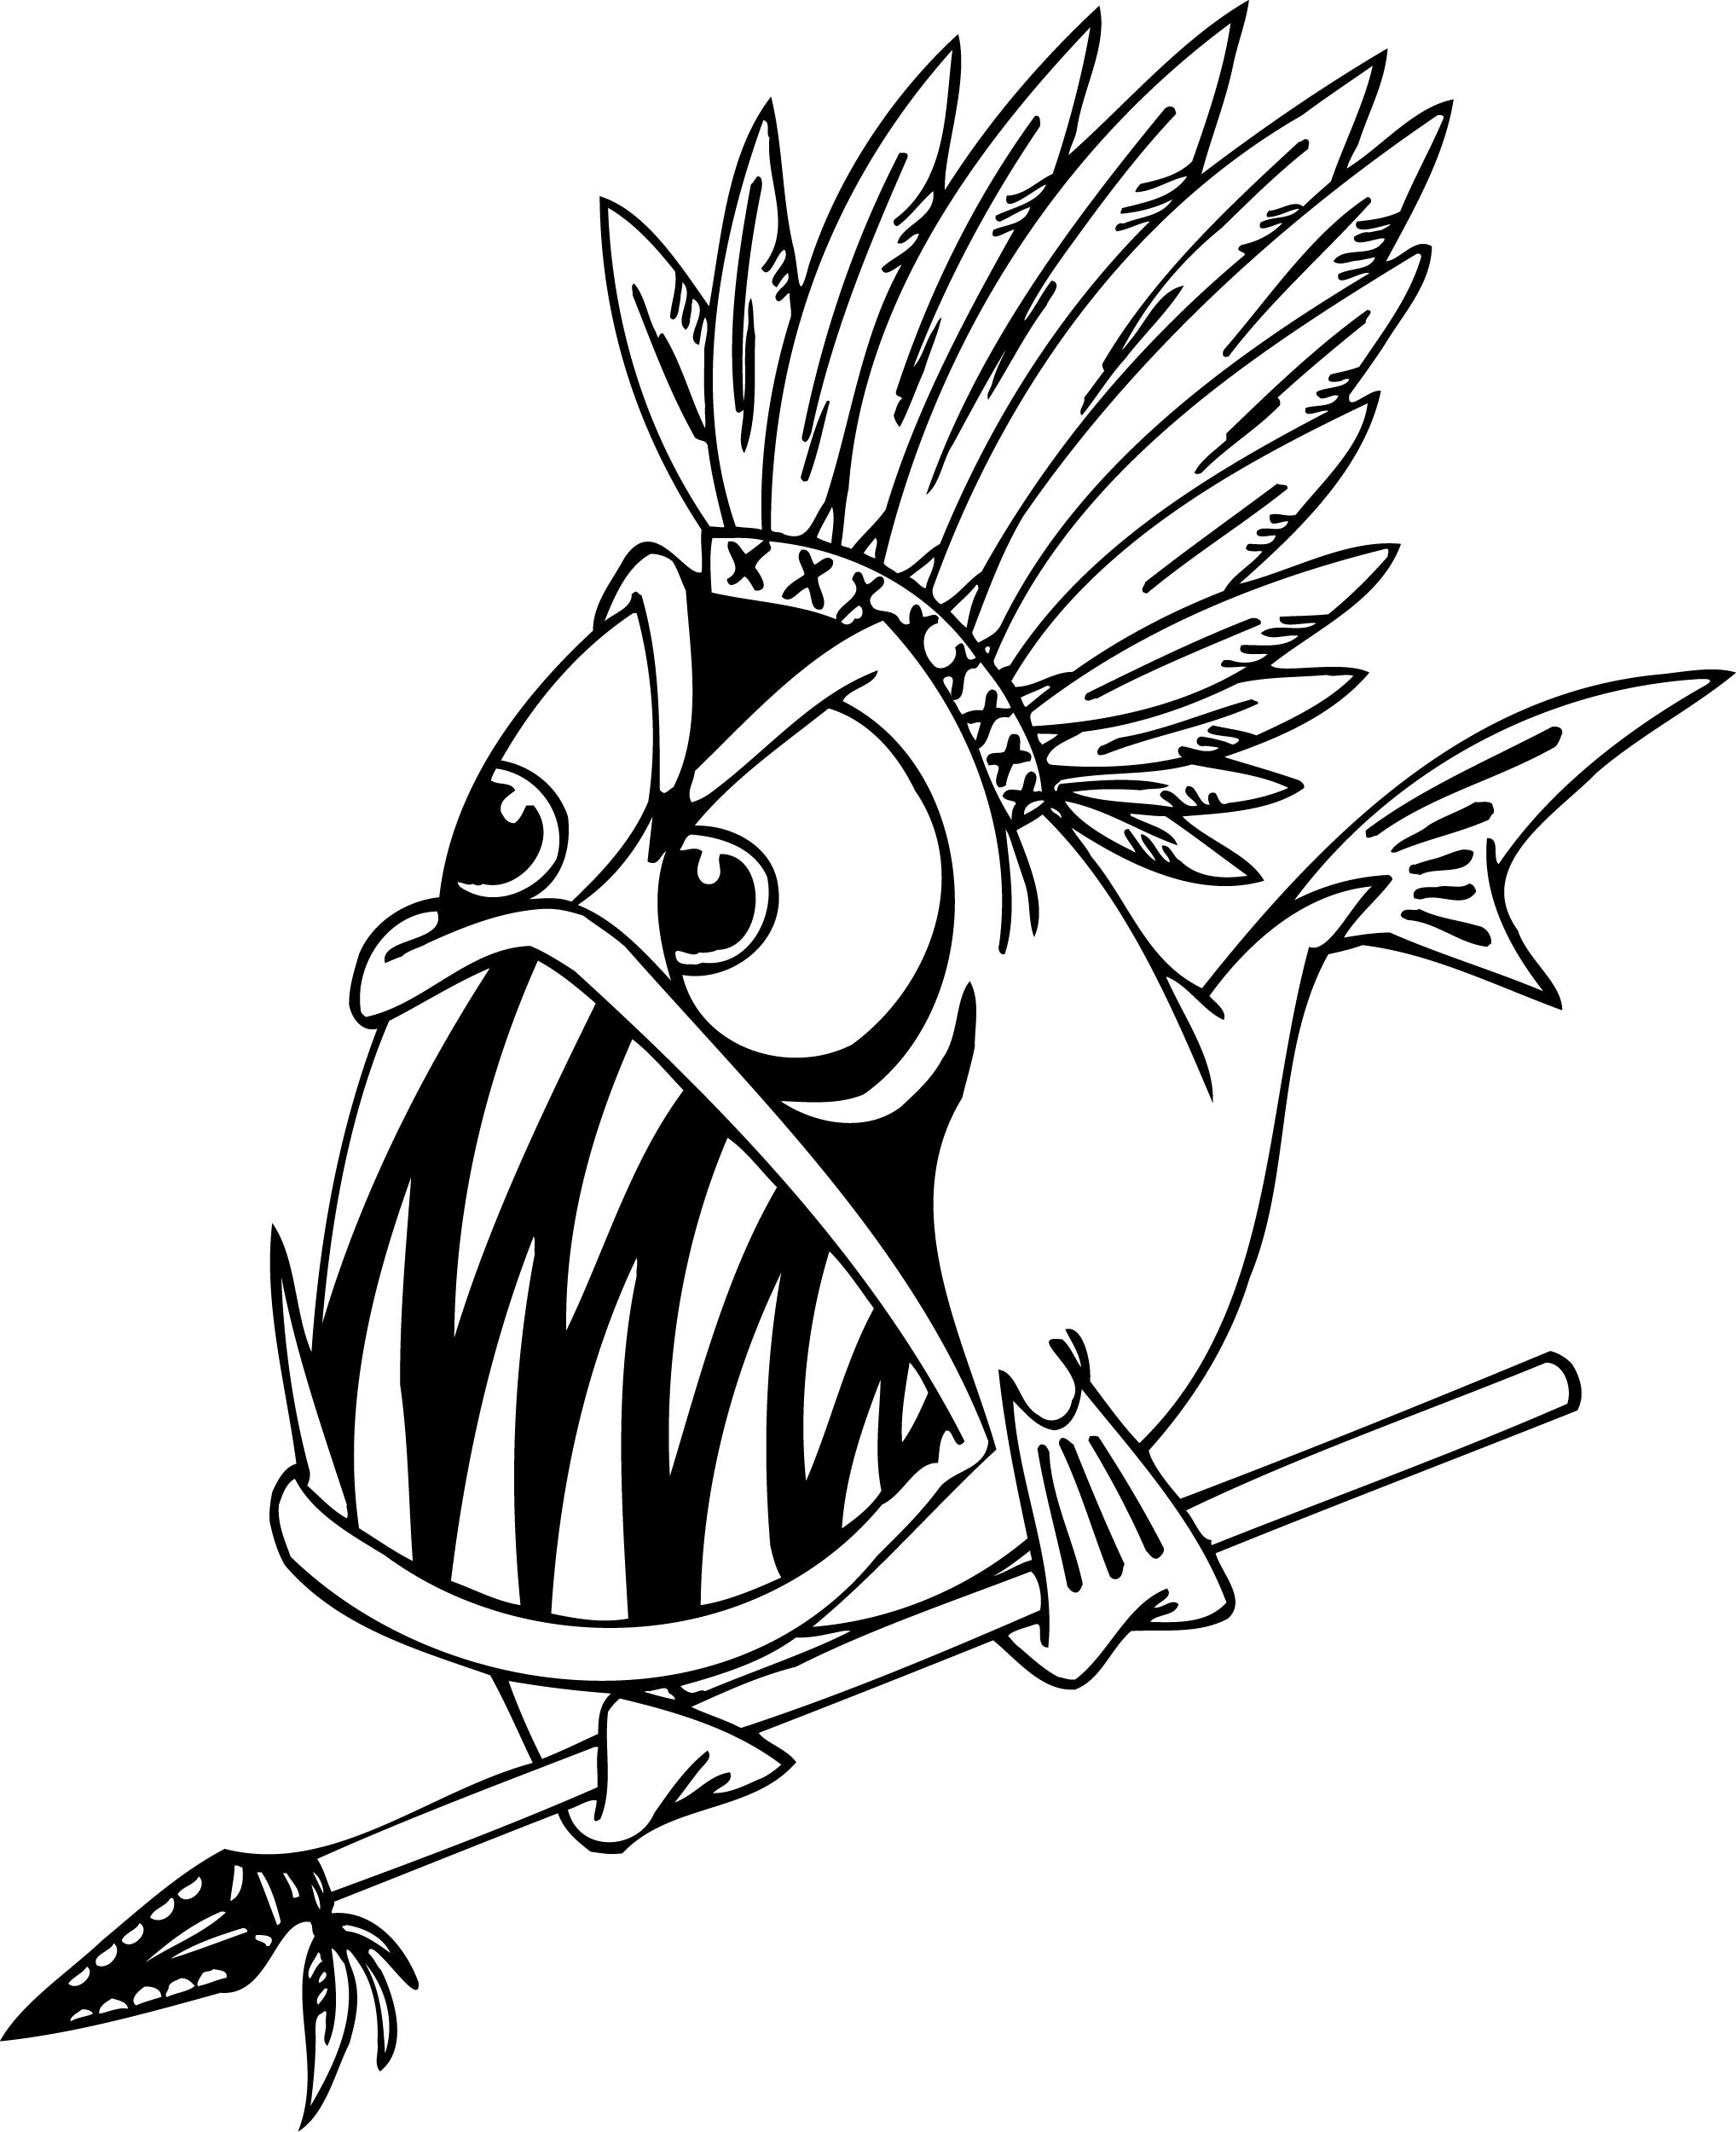 2036x2500 Best Of Piranha Page To Color Design Printable Coloring Sheet